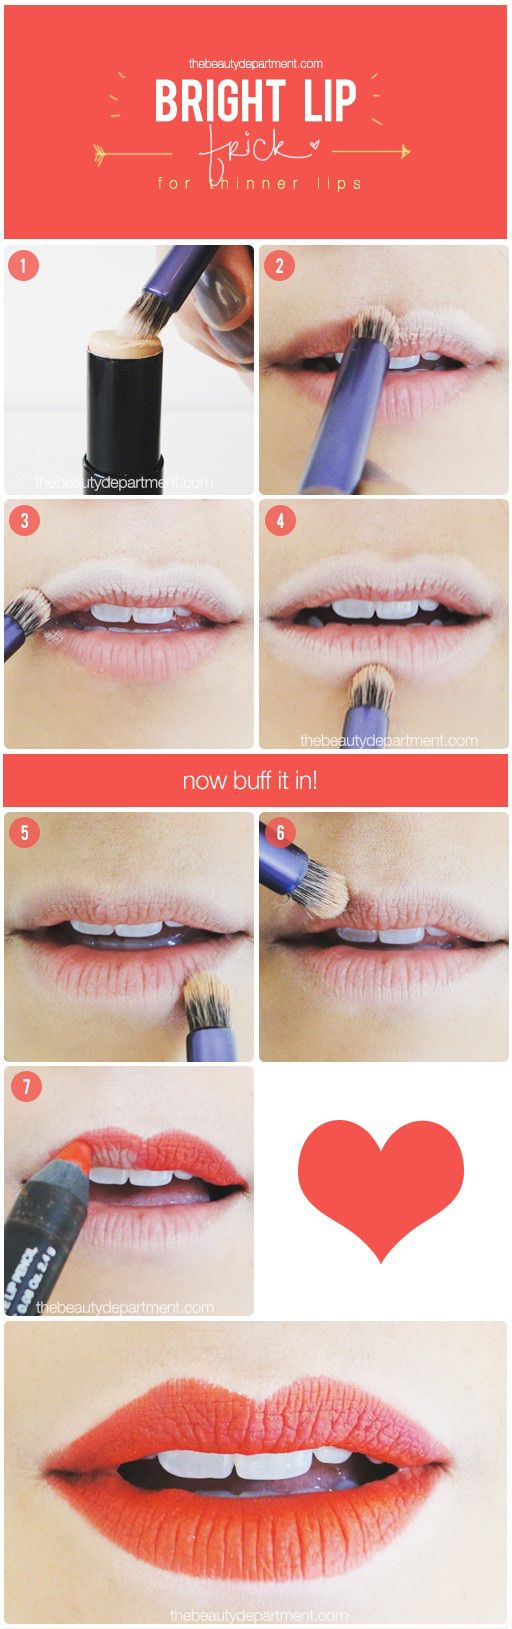 HOW TO WEAR BRIGHT LIPSTICK ON THINNER LIPS TUTORIAL + PHOTOGRAPHY BY AMY NADINE, GRAPHIC DESIGN BY EUNICE CHUN